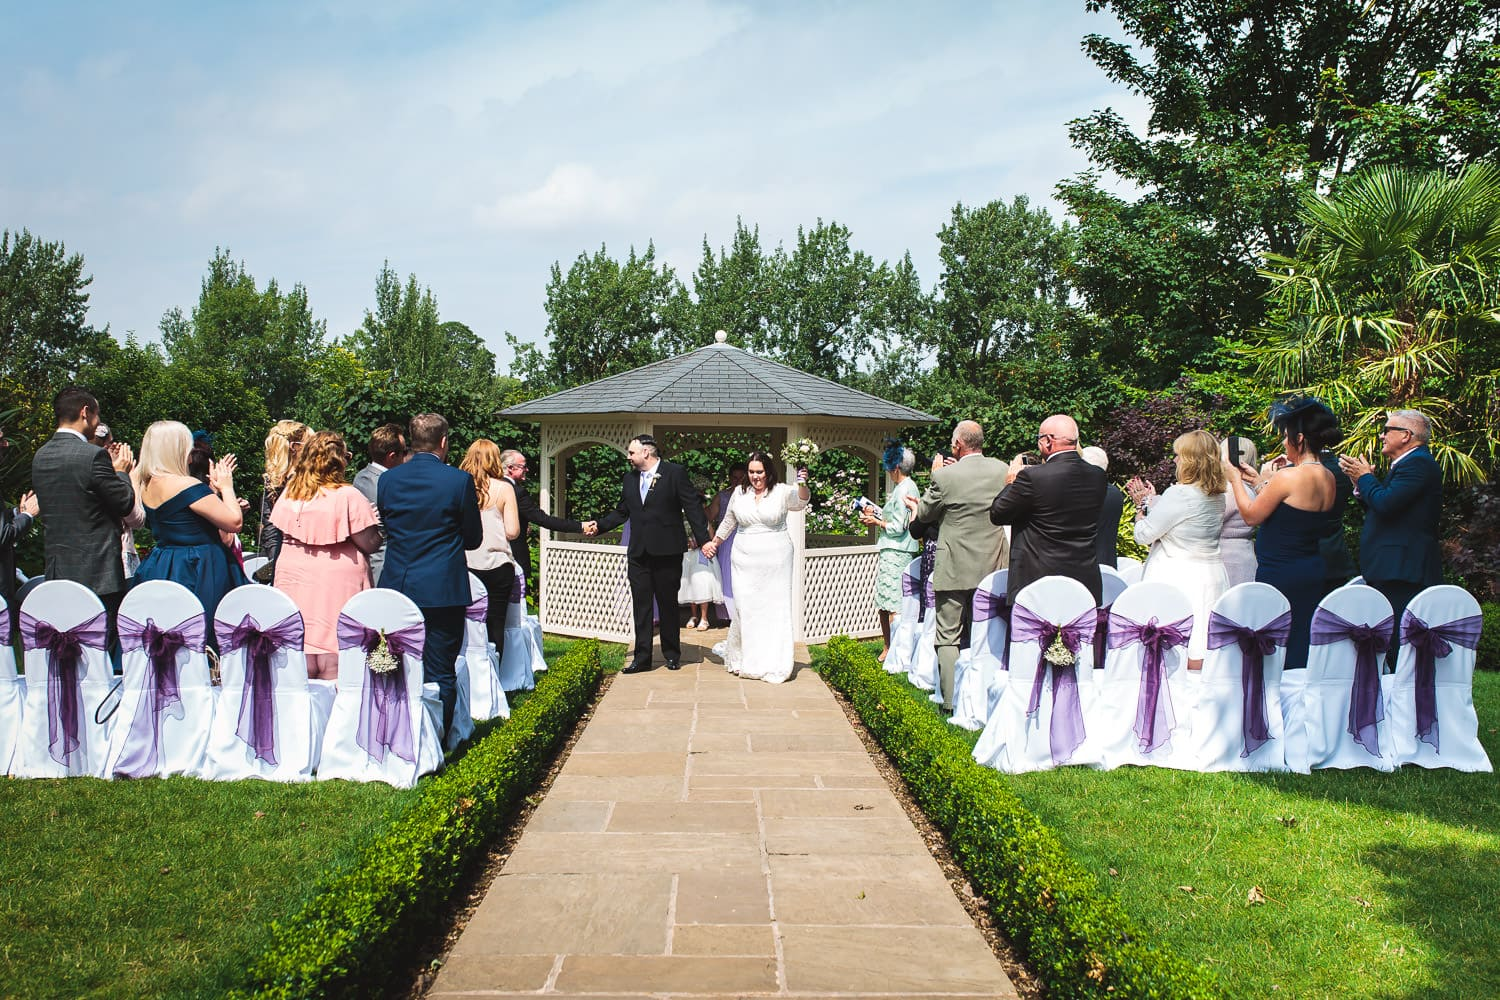 warwick house wedding ceremony is over and couple walk down aisle